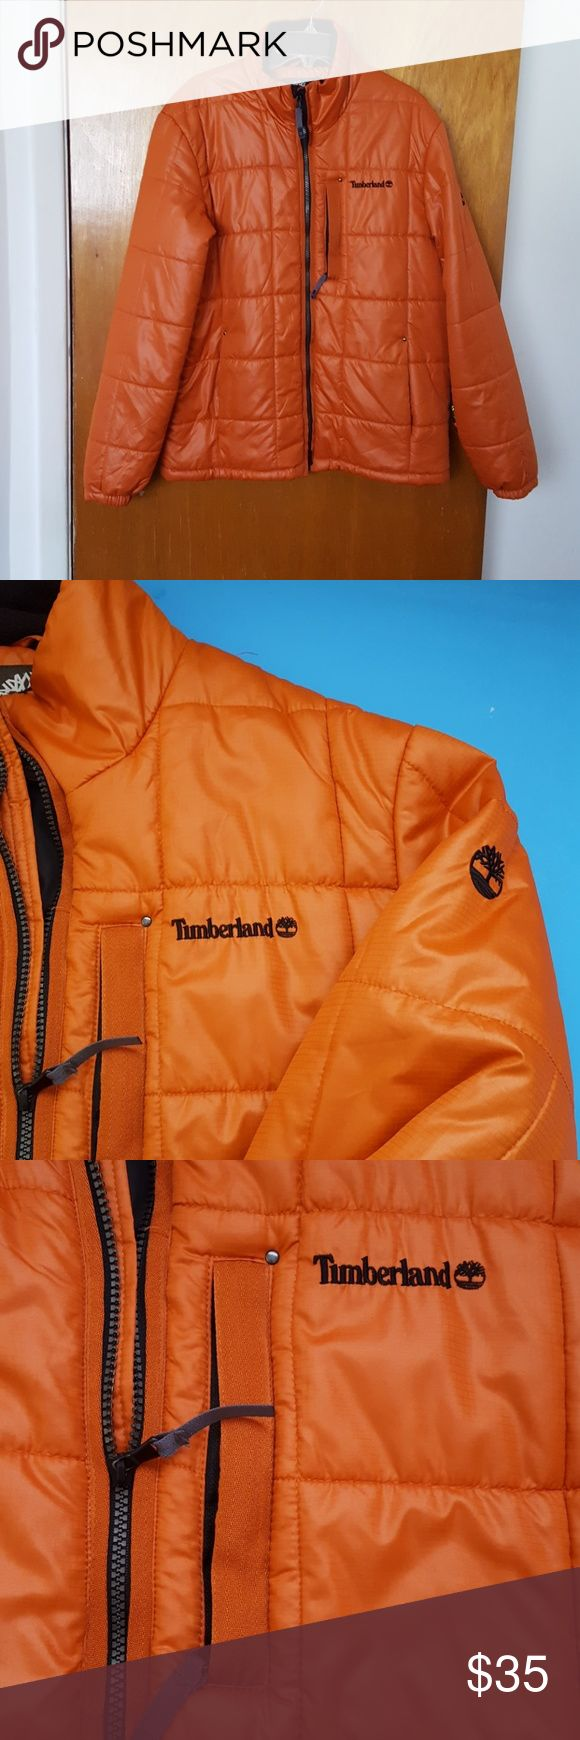 Timberland Men's Winter Jacket Light weight polyester.  Zipped chest pocket. Inside velcro closure pocket  for headphone and/ or cell phone.  In good used condition. Timberland Jackets & Coats